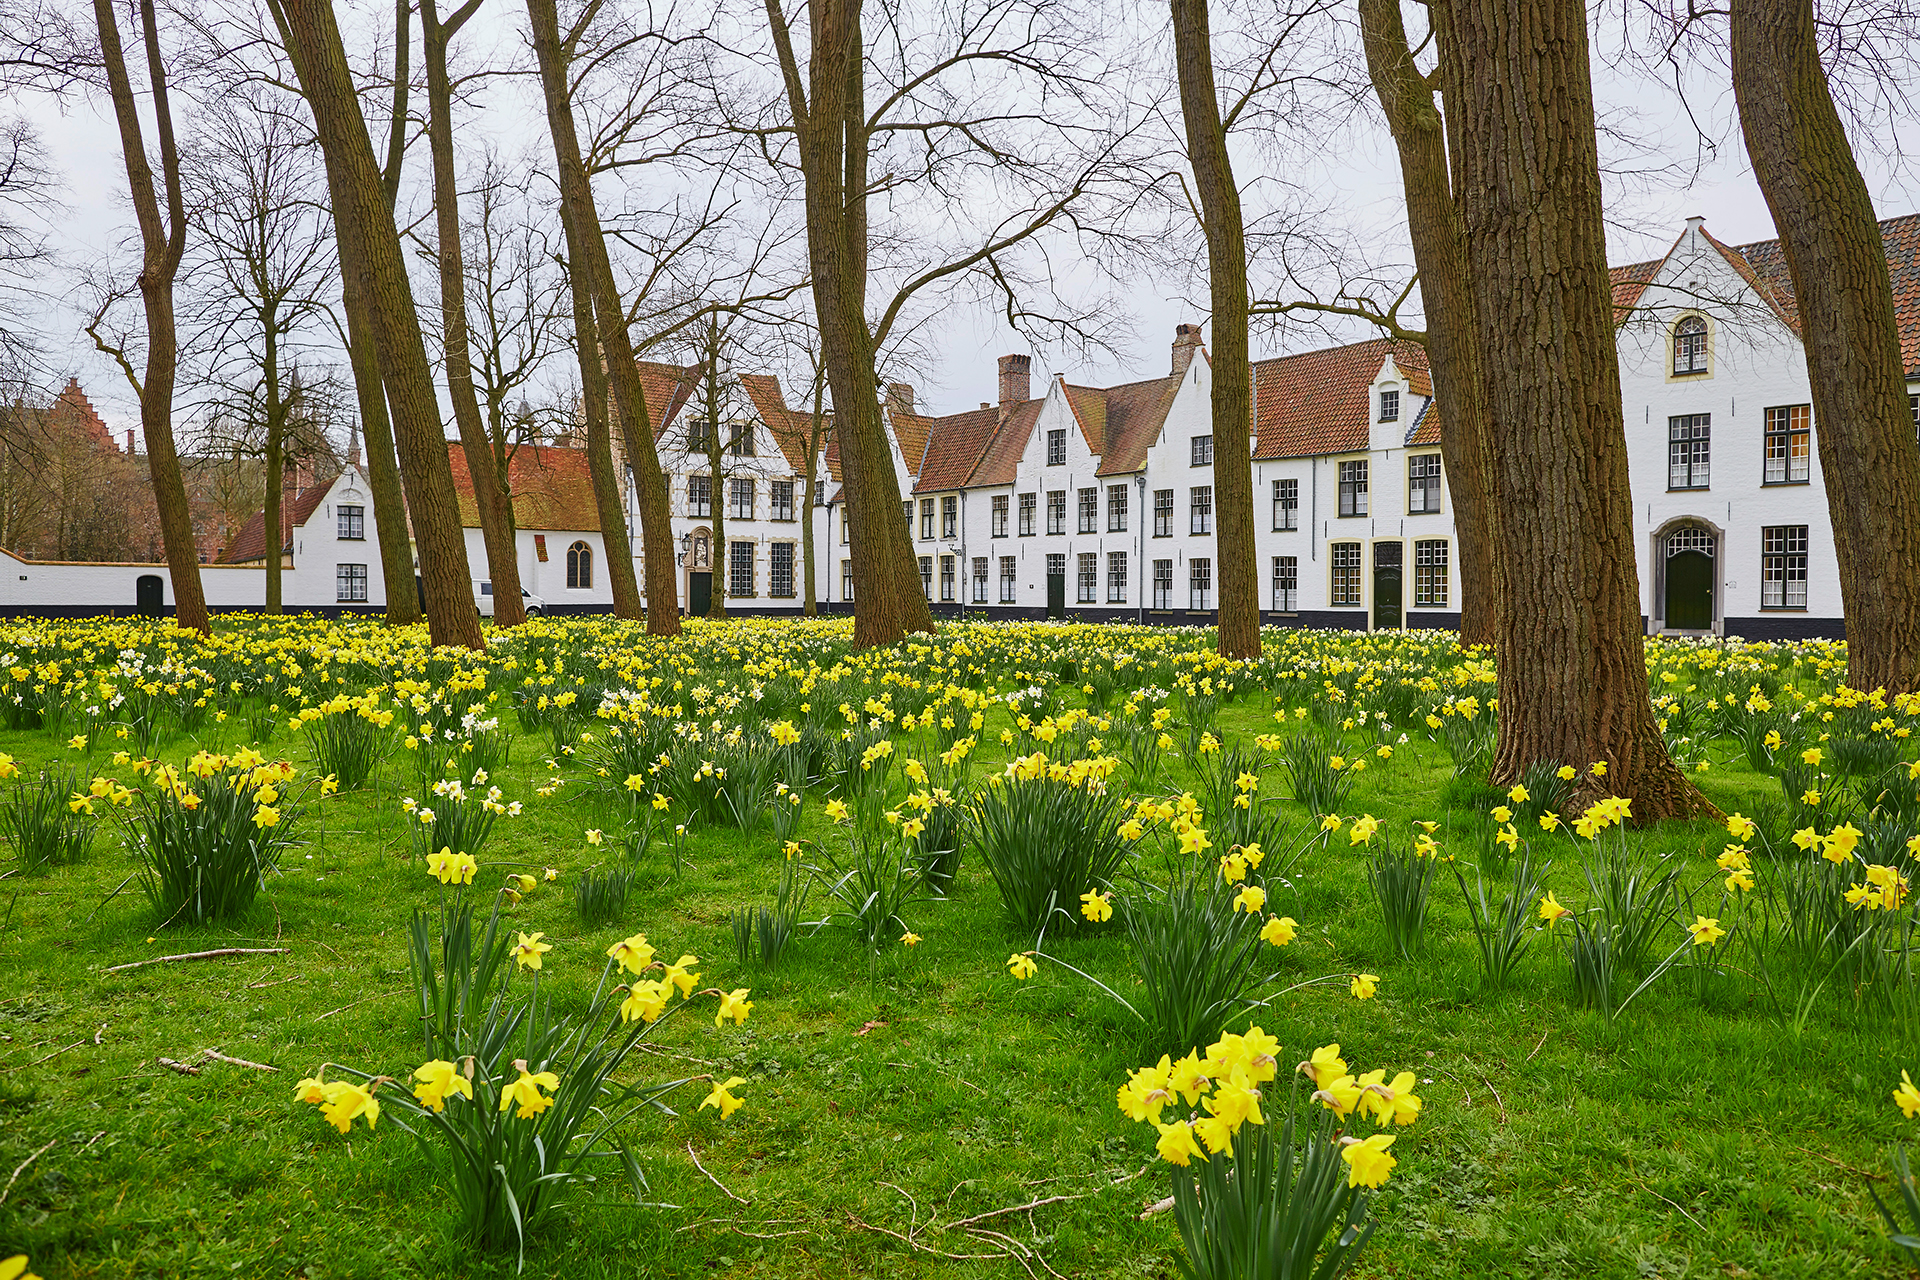 Yellow narcissus in Brugge Beguinage